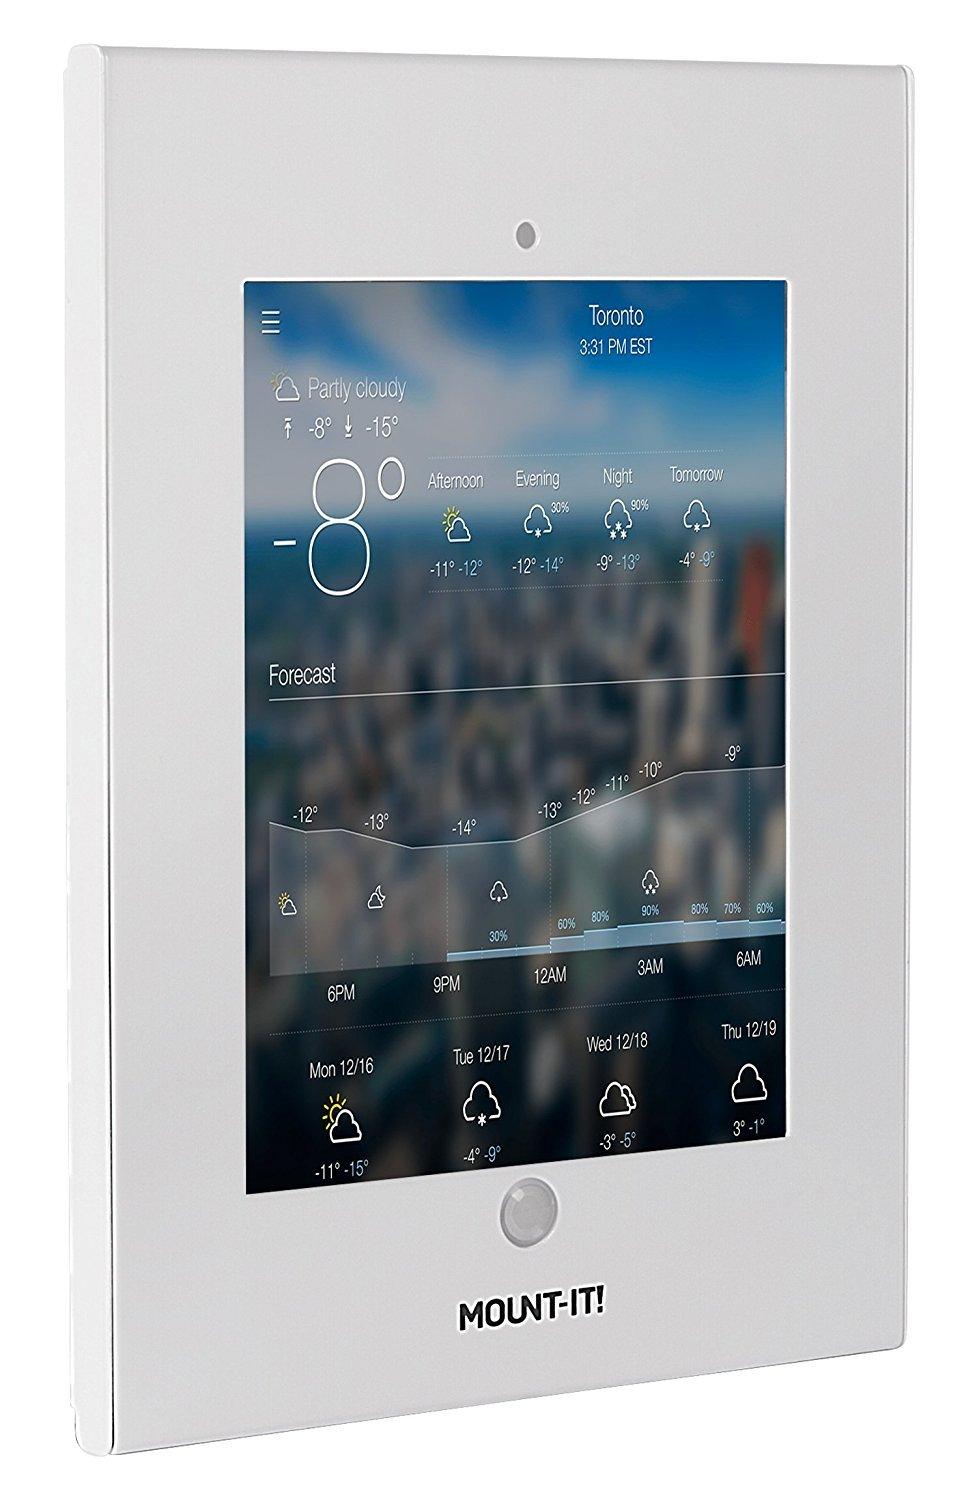 Mount-It! Tablet Wall Mount with Anti-Theft Locking Function for Public Displays, Fits iPad, iPad 2, 3, 4, iPad Air, iPad Air 2, iPad with Retina Display, iPad Pro 9.7'', Or 9.7 inch Screen Tablets